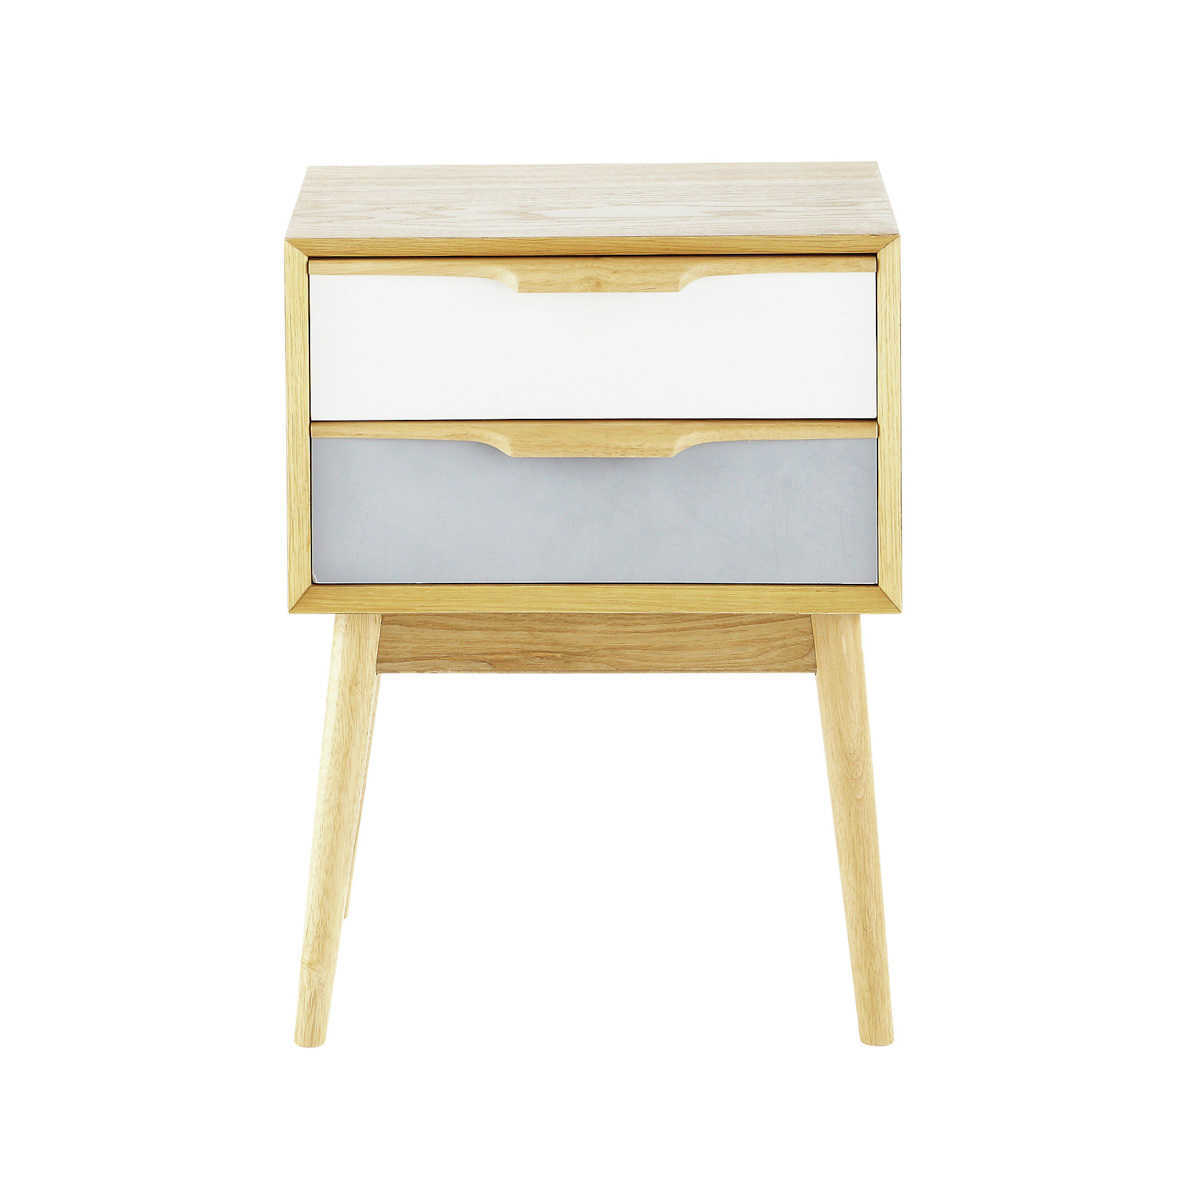 O d nicher une table de nuit design h ll blogzine Table de chevet bois exotique